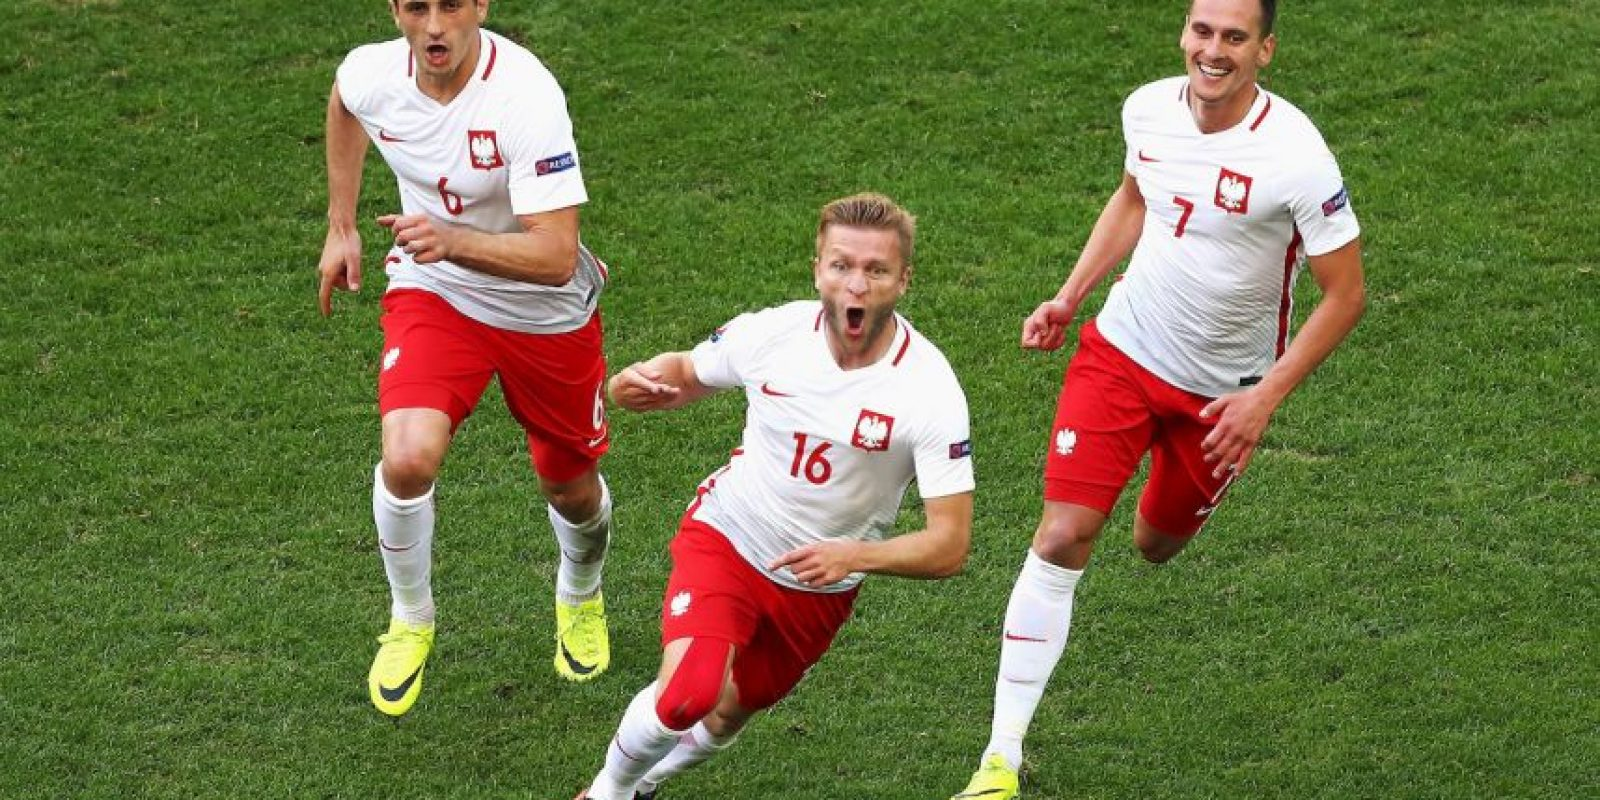 Polonia Foto: Getty Images